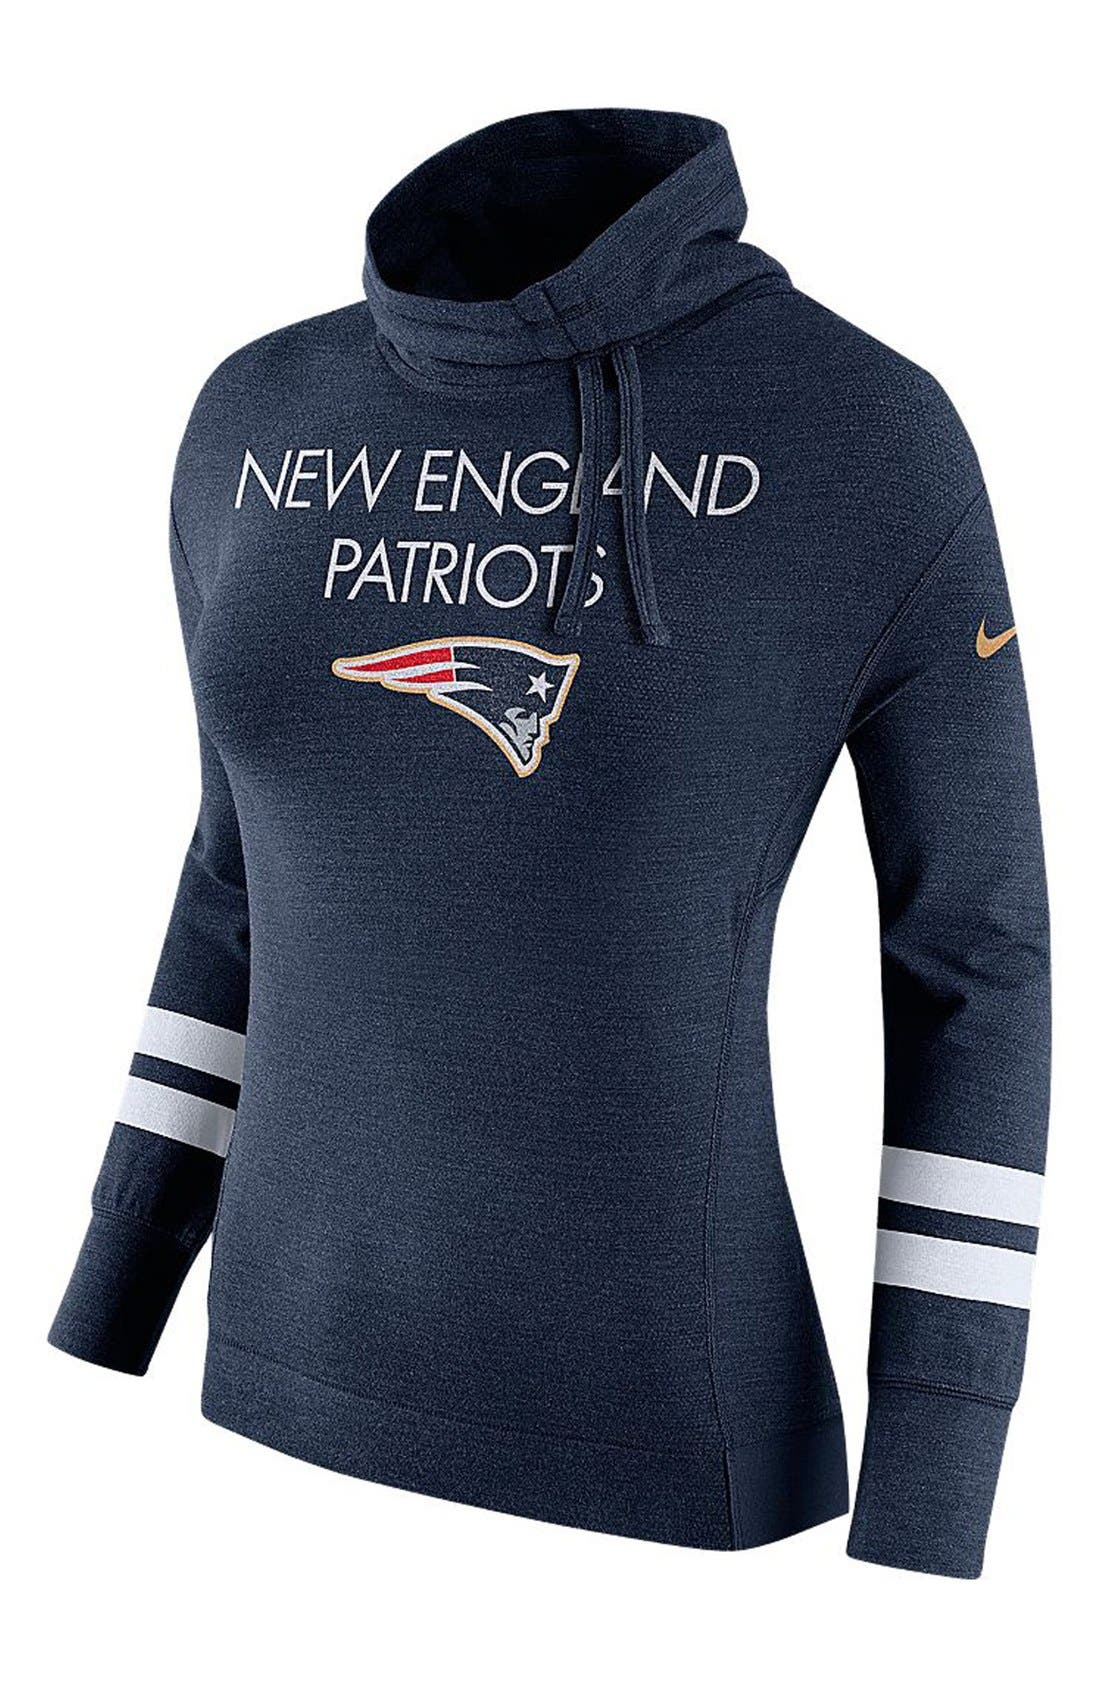 Main Image - Nike 'Champ Drive Obsessed - New England Patriots' Top